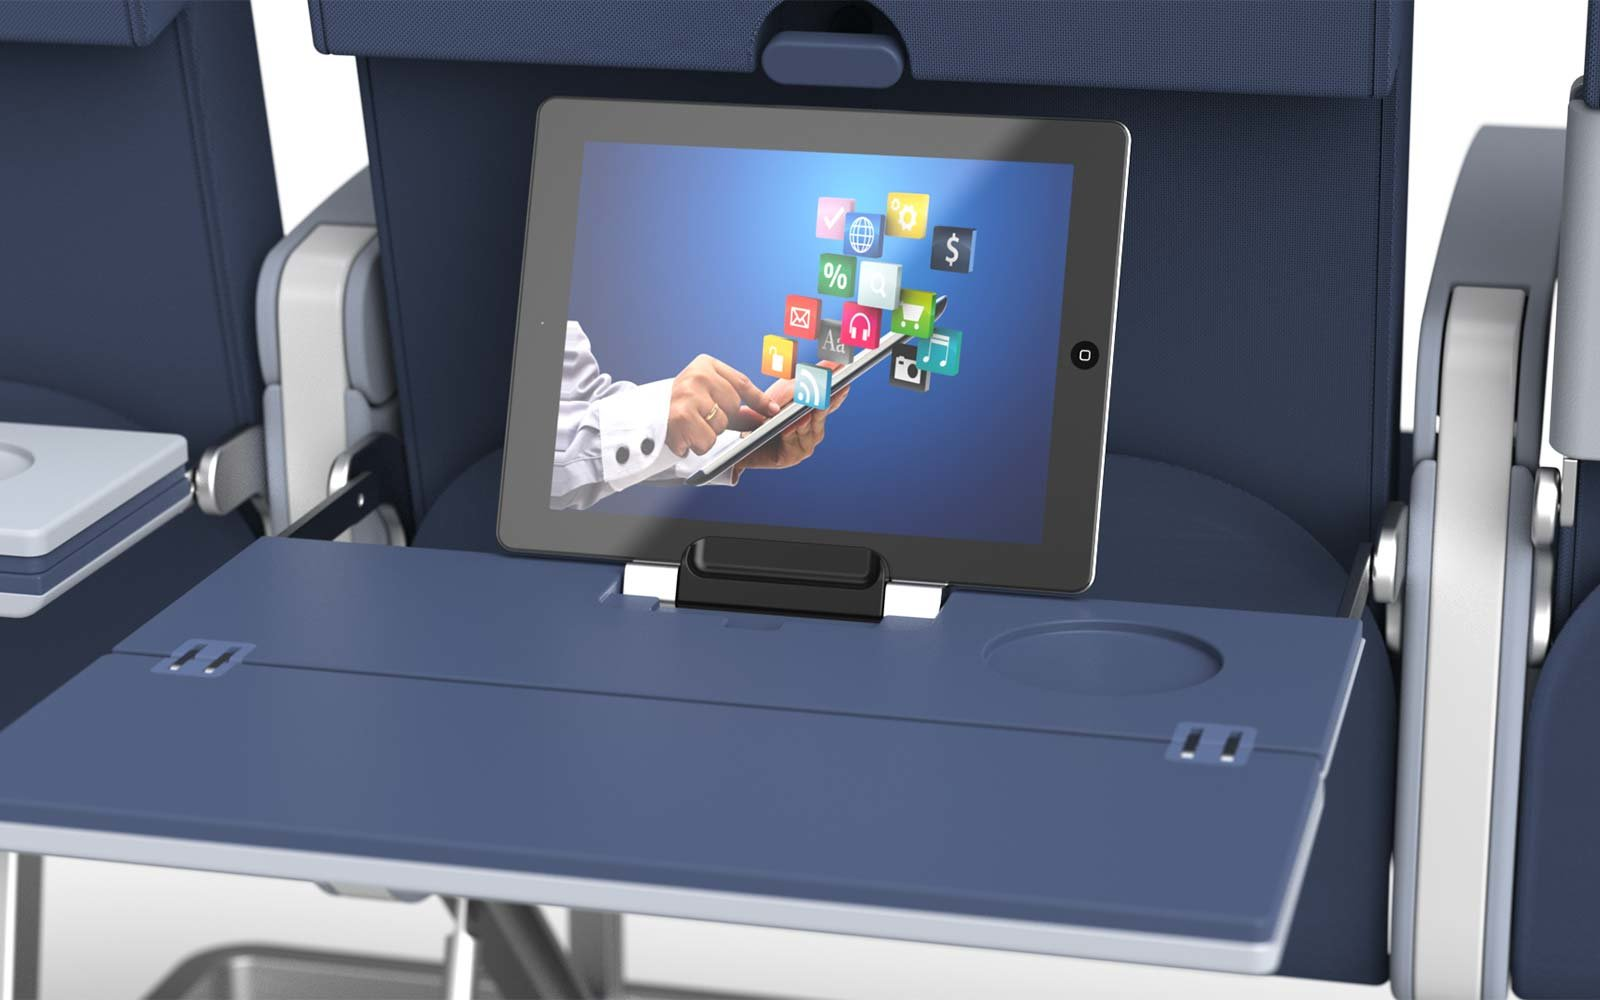 astronics technology aviation wireless charging tray airplane